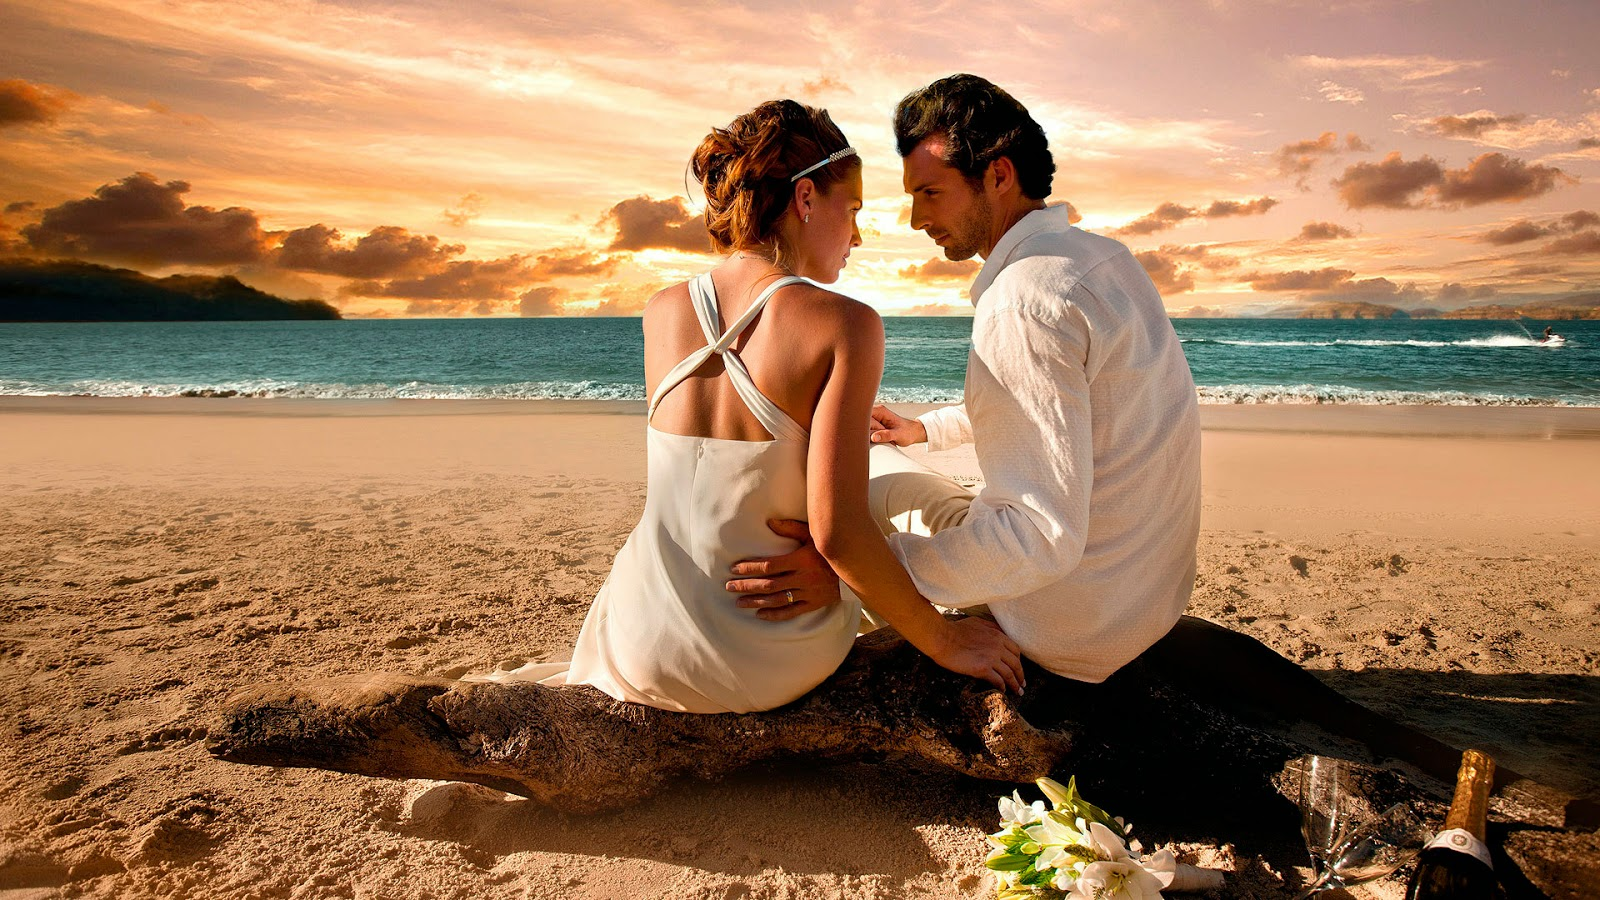 romantic couple images love  at beach